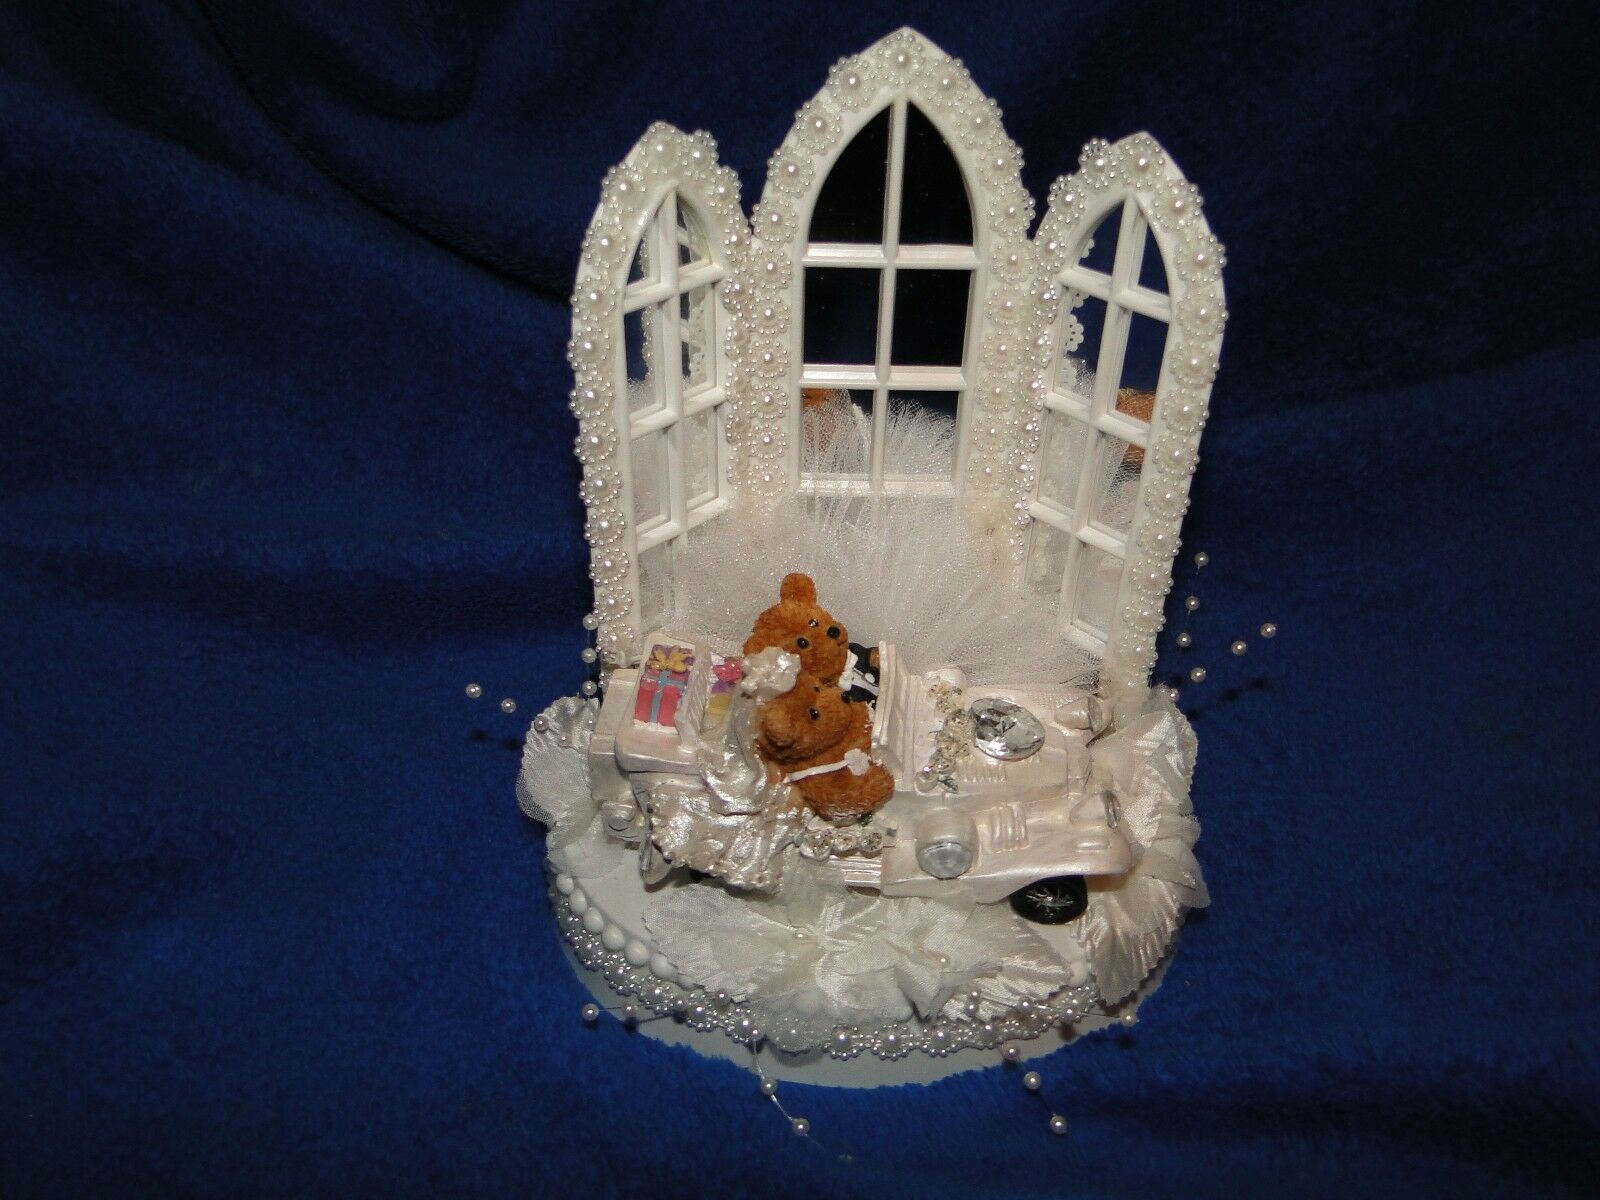 New Chapel MirrGoldt Windows Wedding Cake topper with Teddy Bear Couple Weiß Car